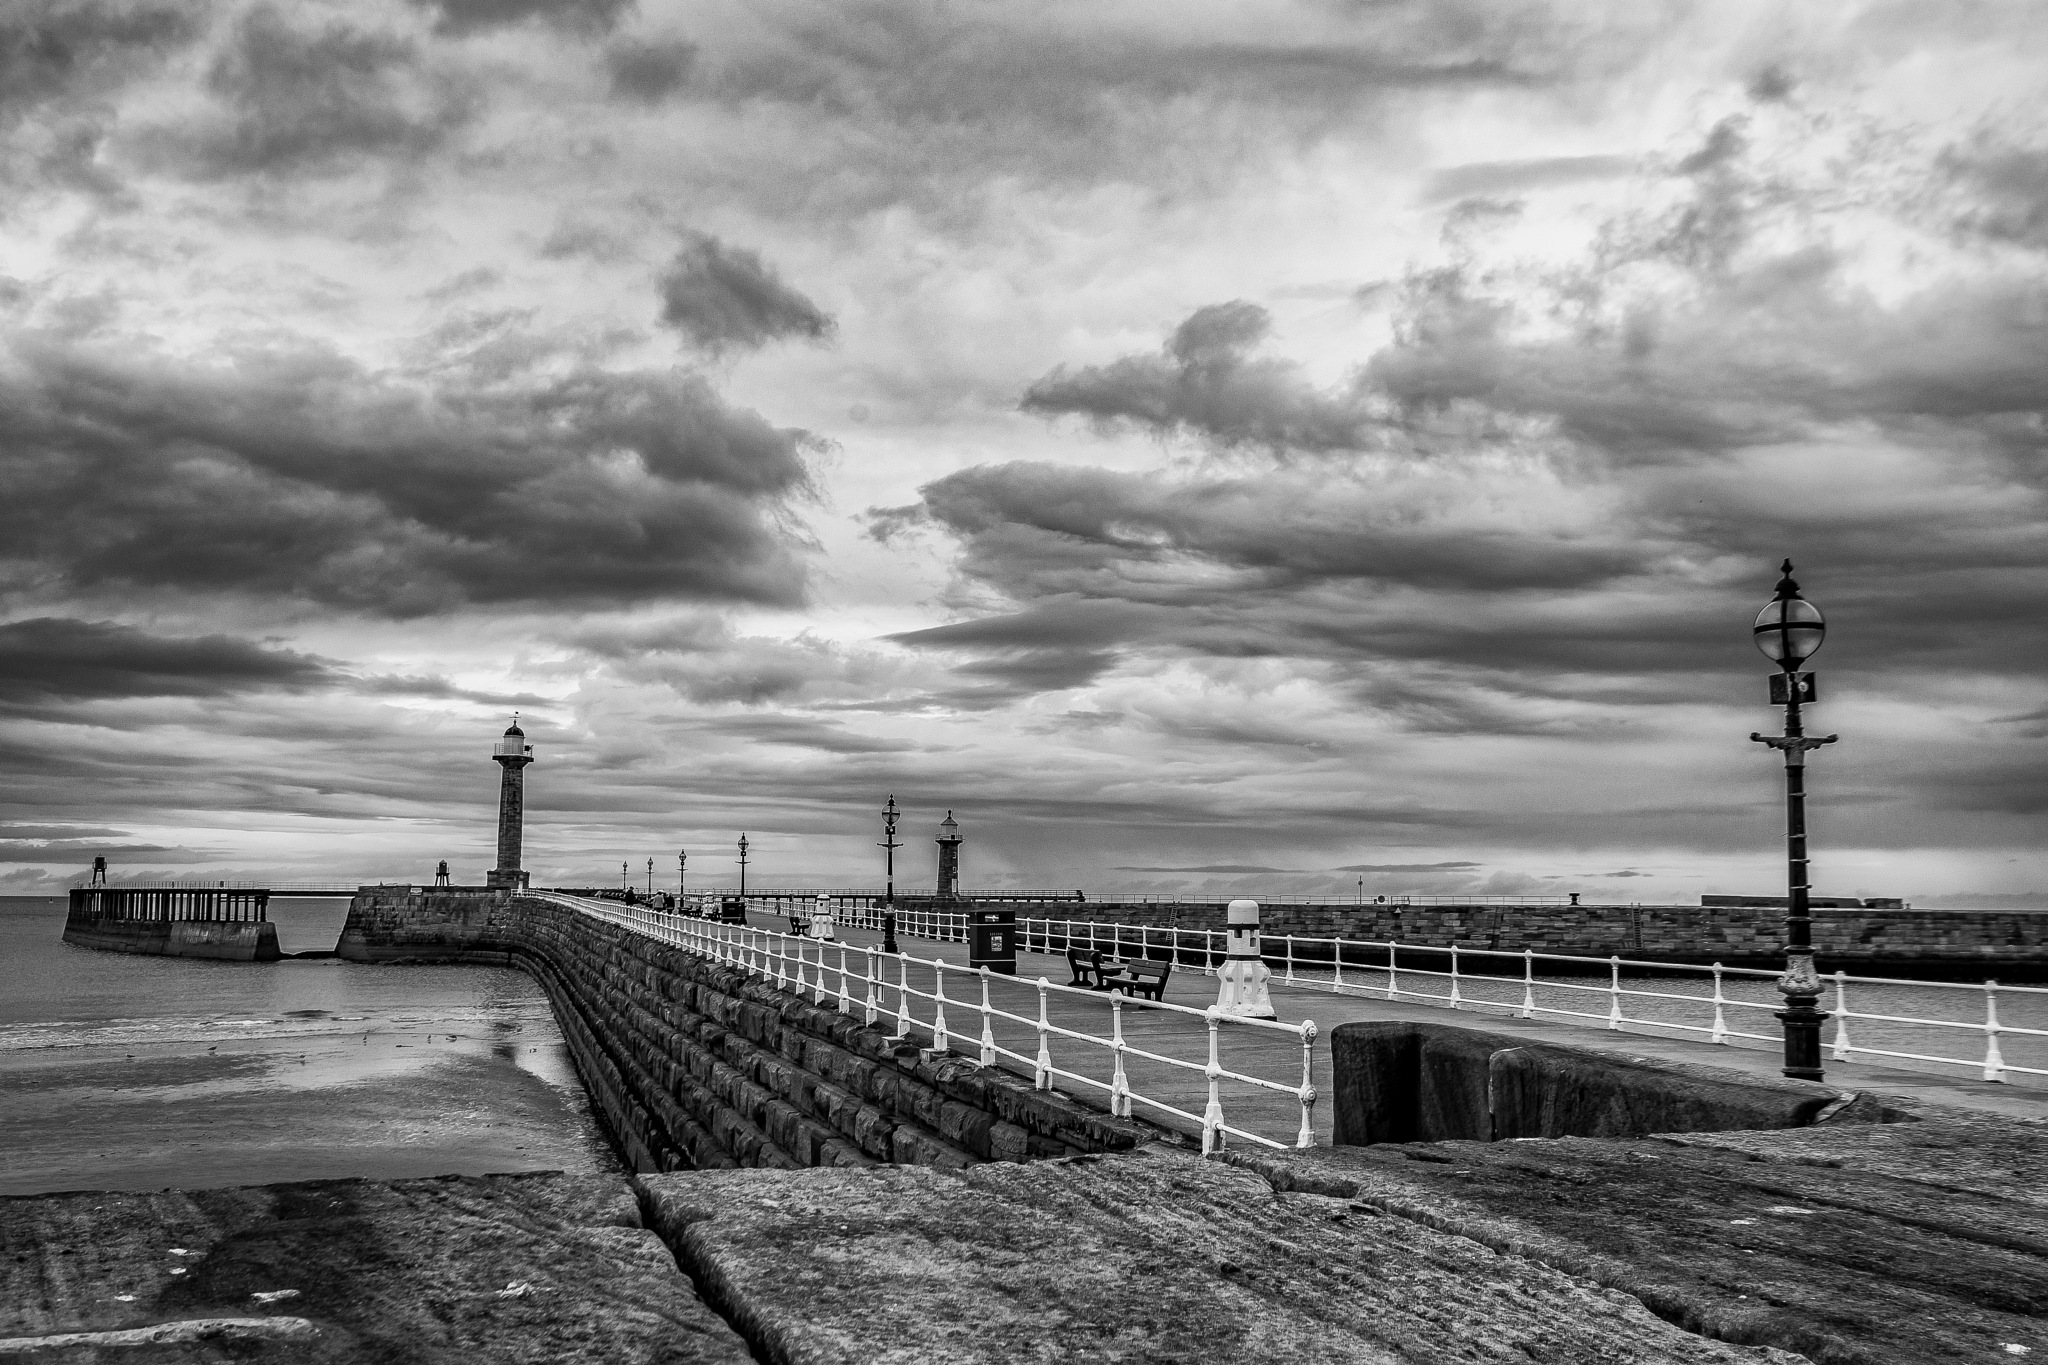 West Pier @ Whitby by D Whitehead